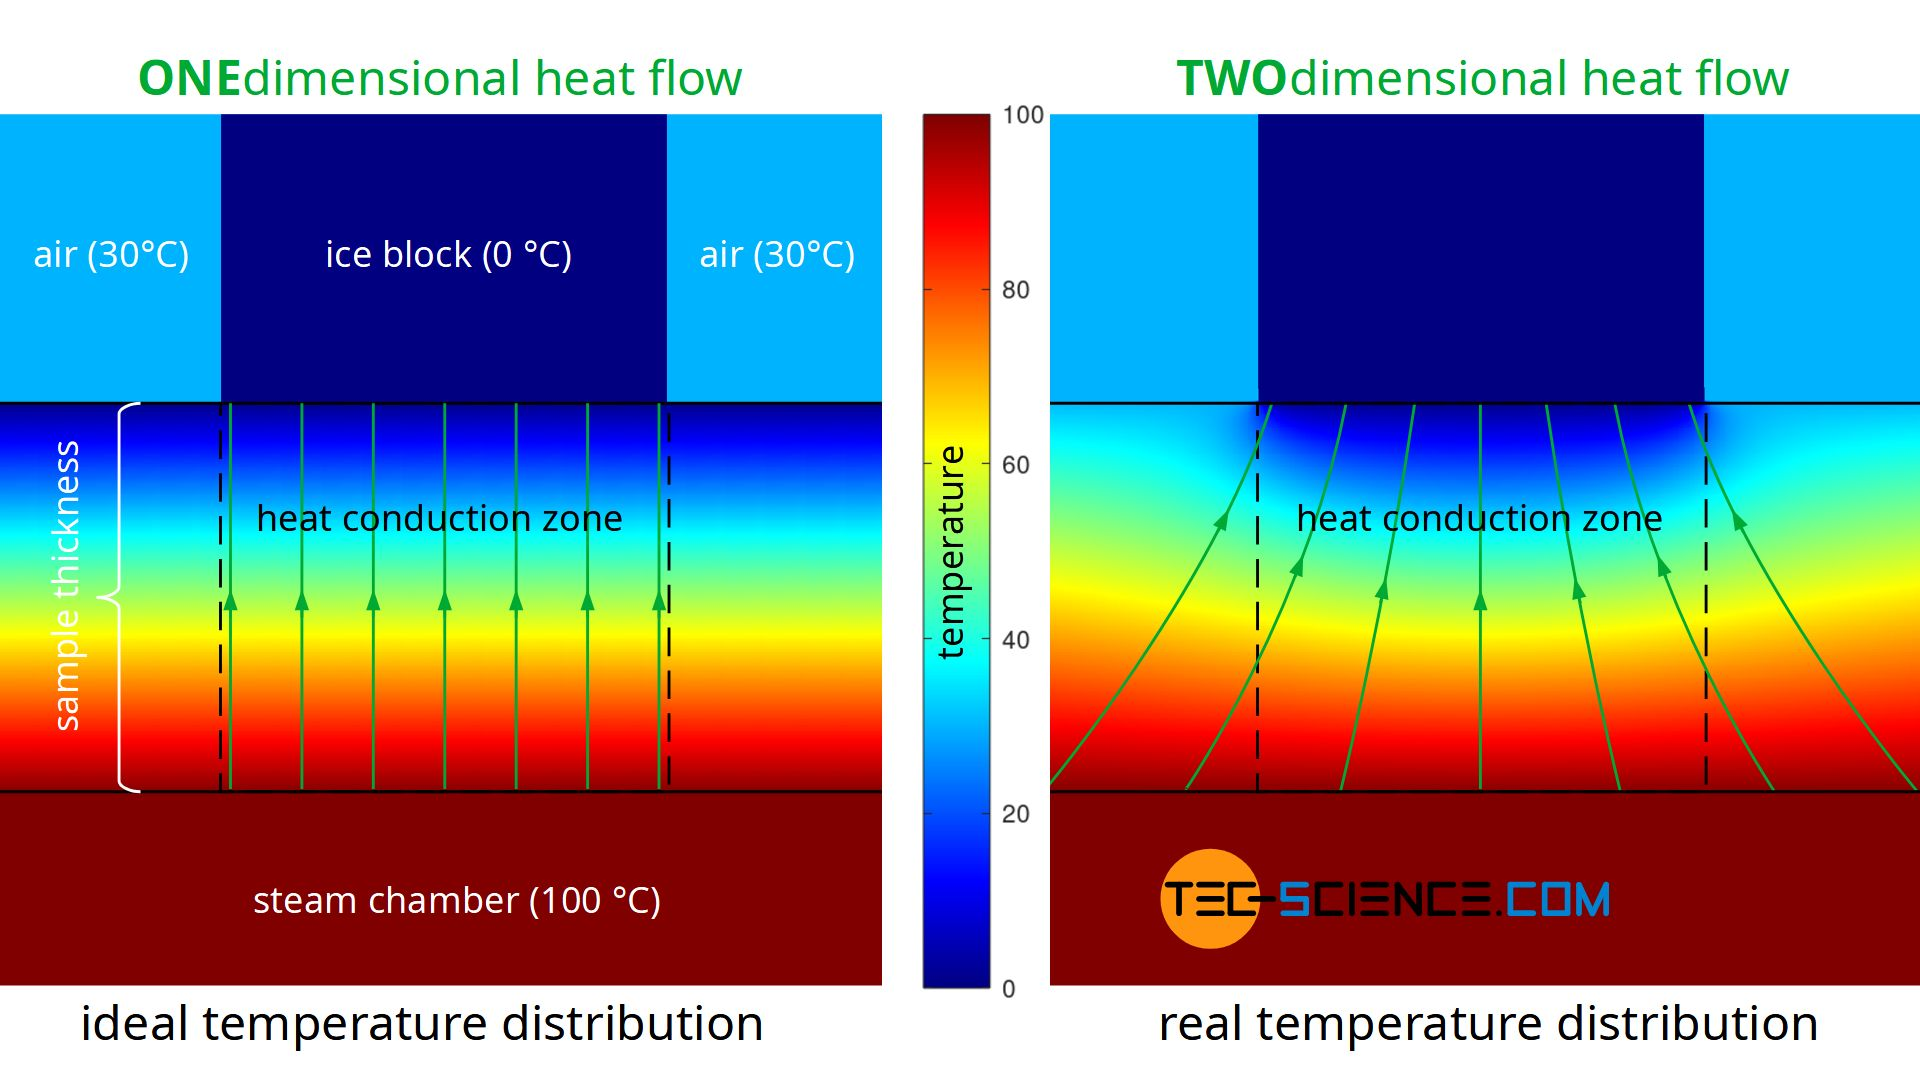 Temperature distribution in the sample (two-dimensional heat flow)